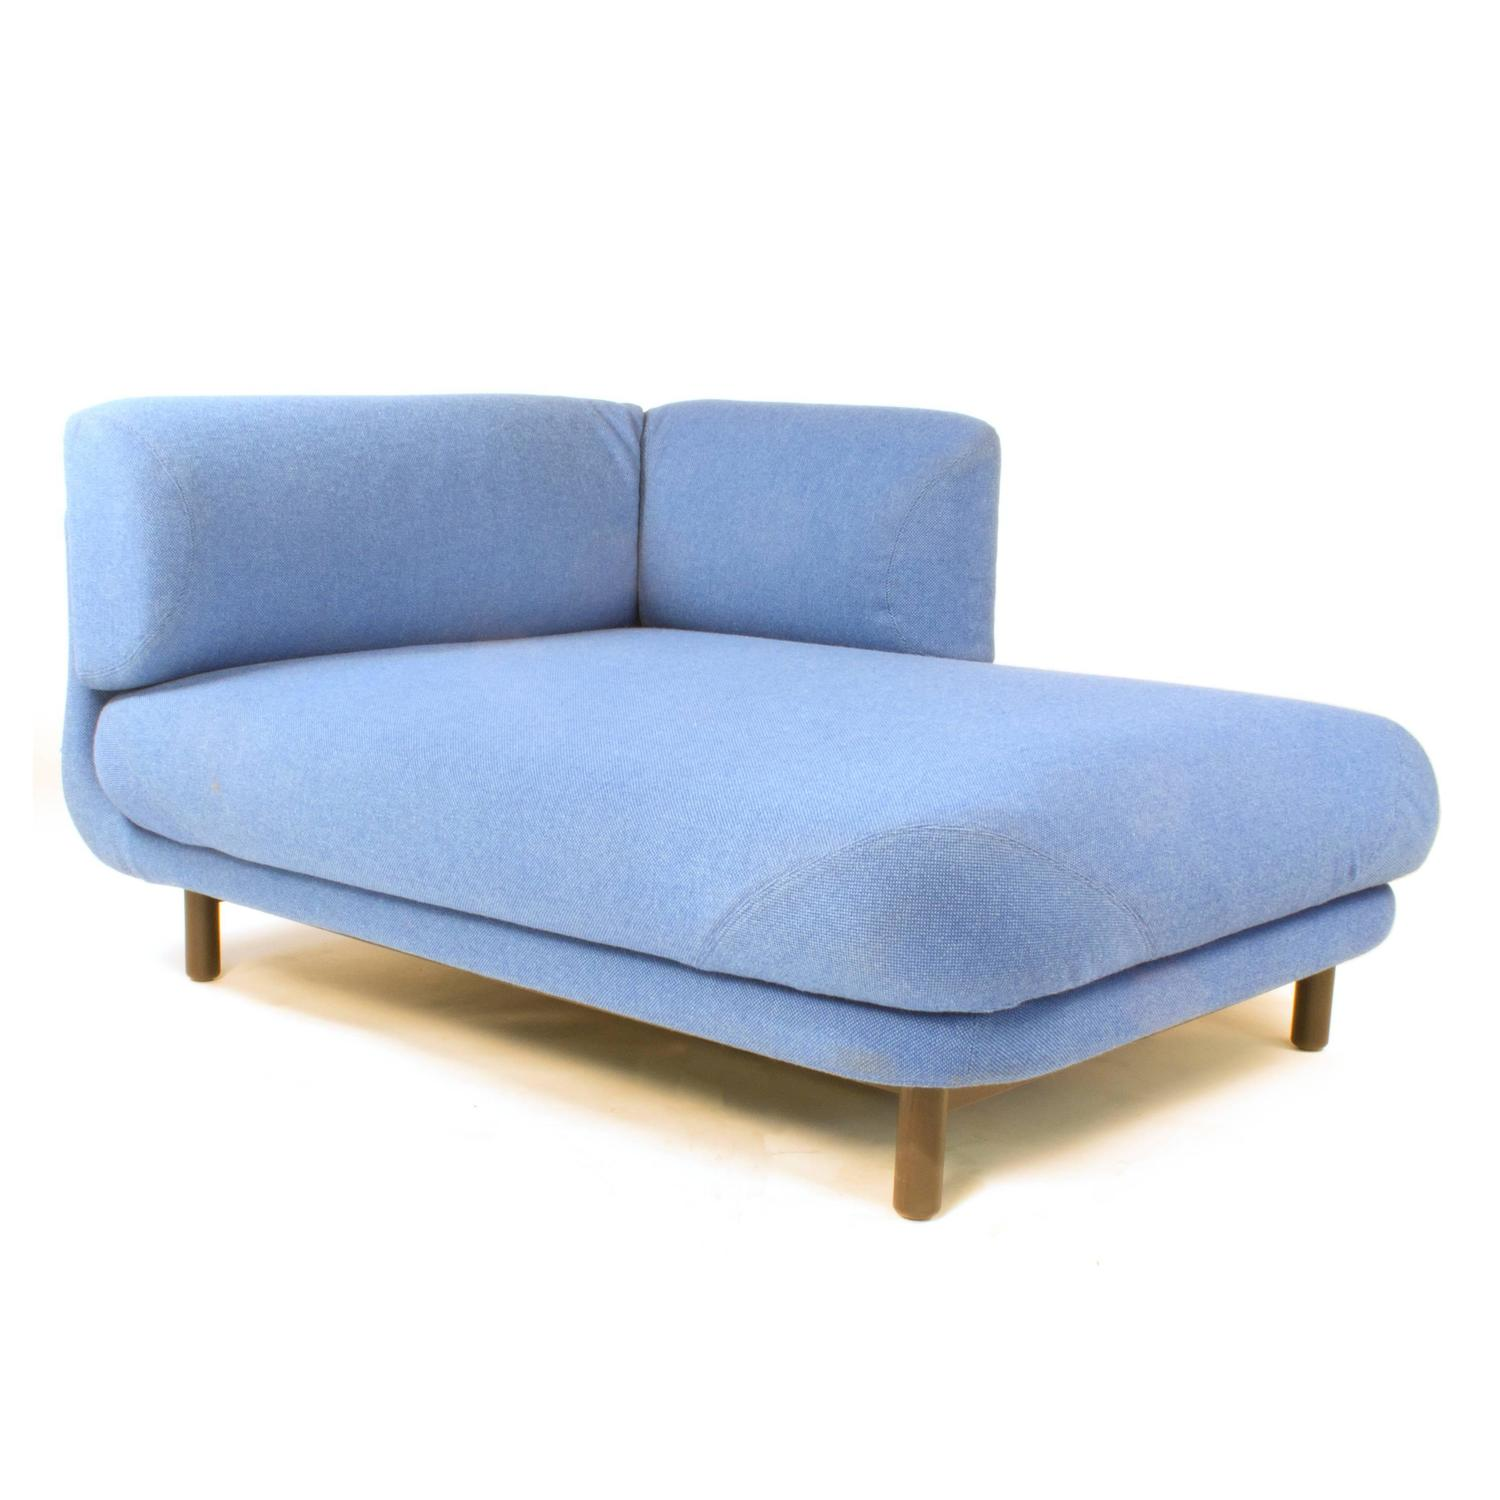 Blue peg chaise longue by nendo japan for cappellini for Chaise longue moderne